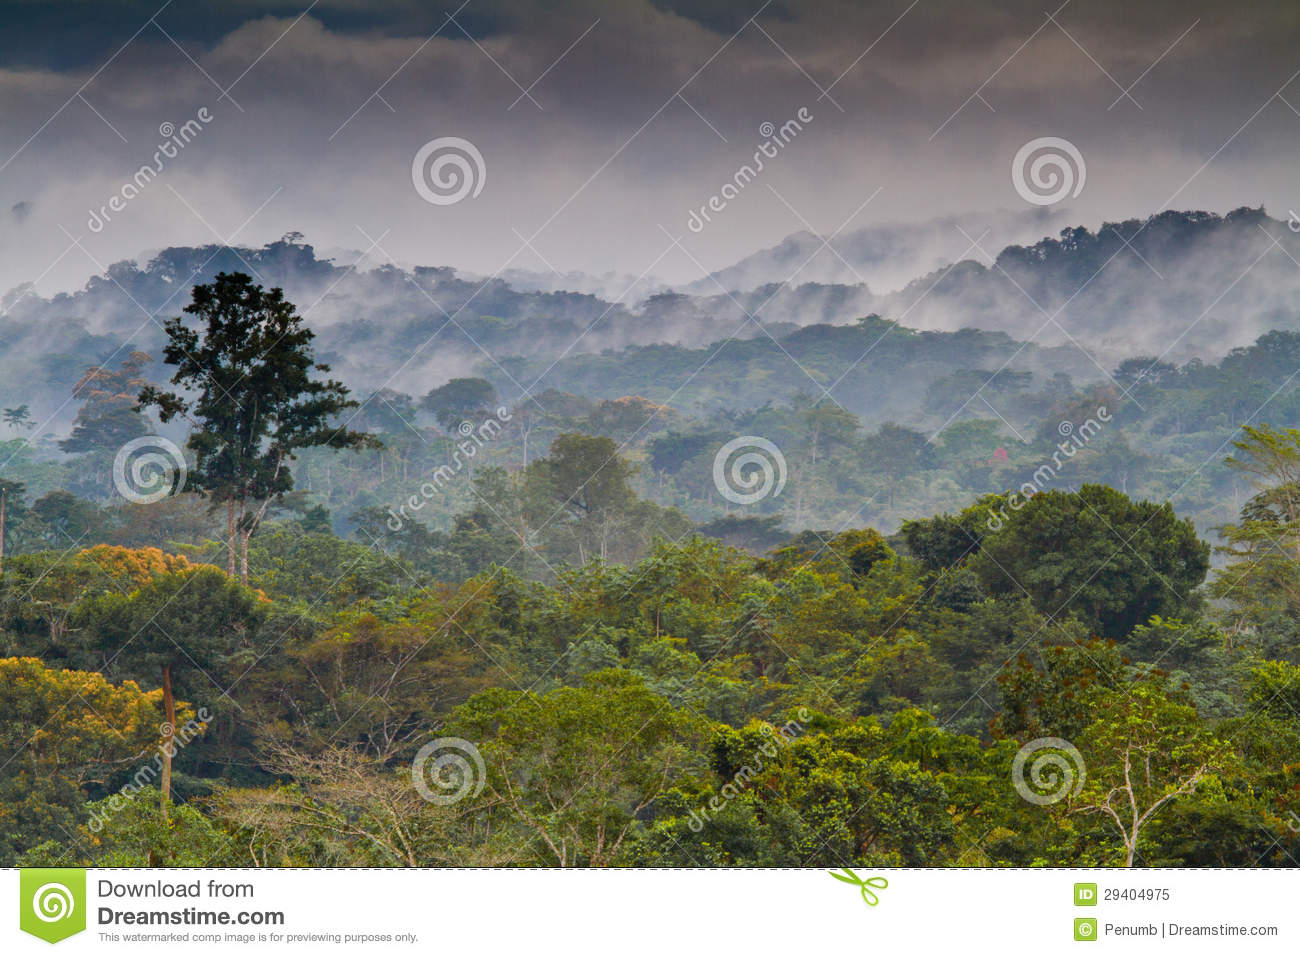 Watch landscaping from diy landscaping budget tips 02:10 landscaping budget tips 02:10 cutting corners isn't the best way to end up with a stellar landscape. African Rainforest Stock Image Image Of Light Green 29404975